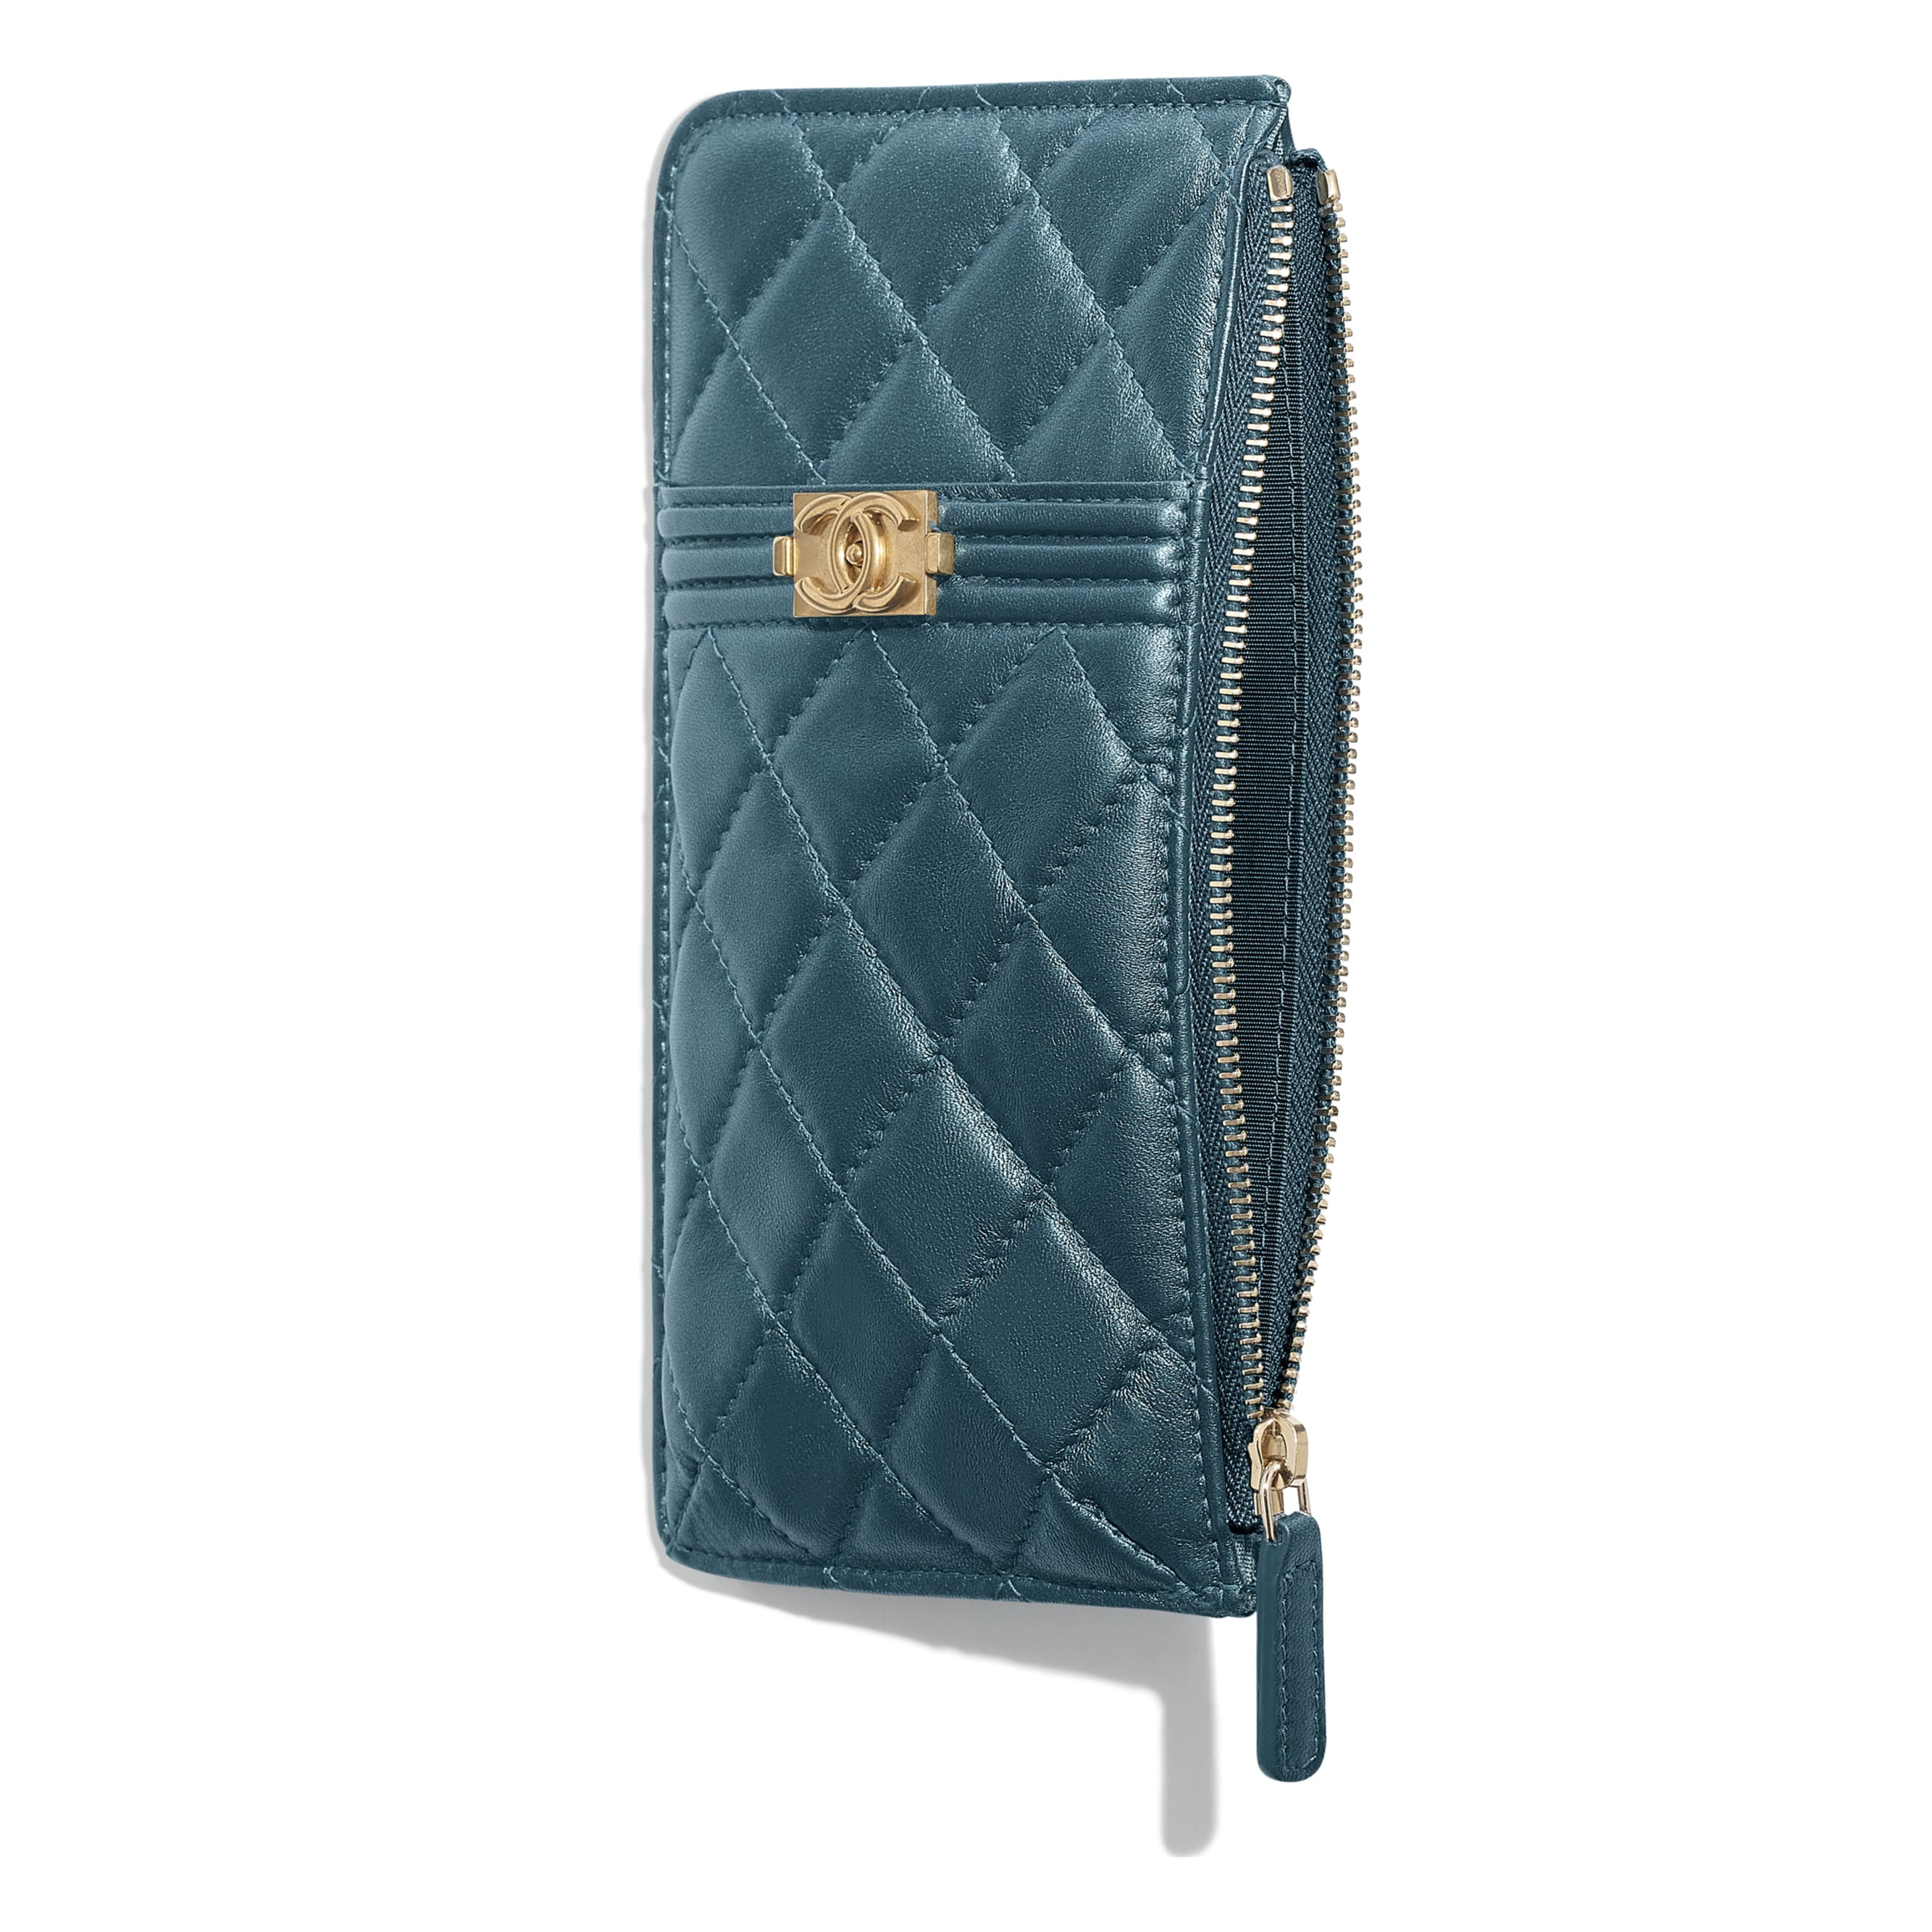 BOY CHANEL Phone & Card Holder - Blue - Metallic Lambskin & Gold Metal - CHANEL - Other view - see standard sized version